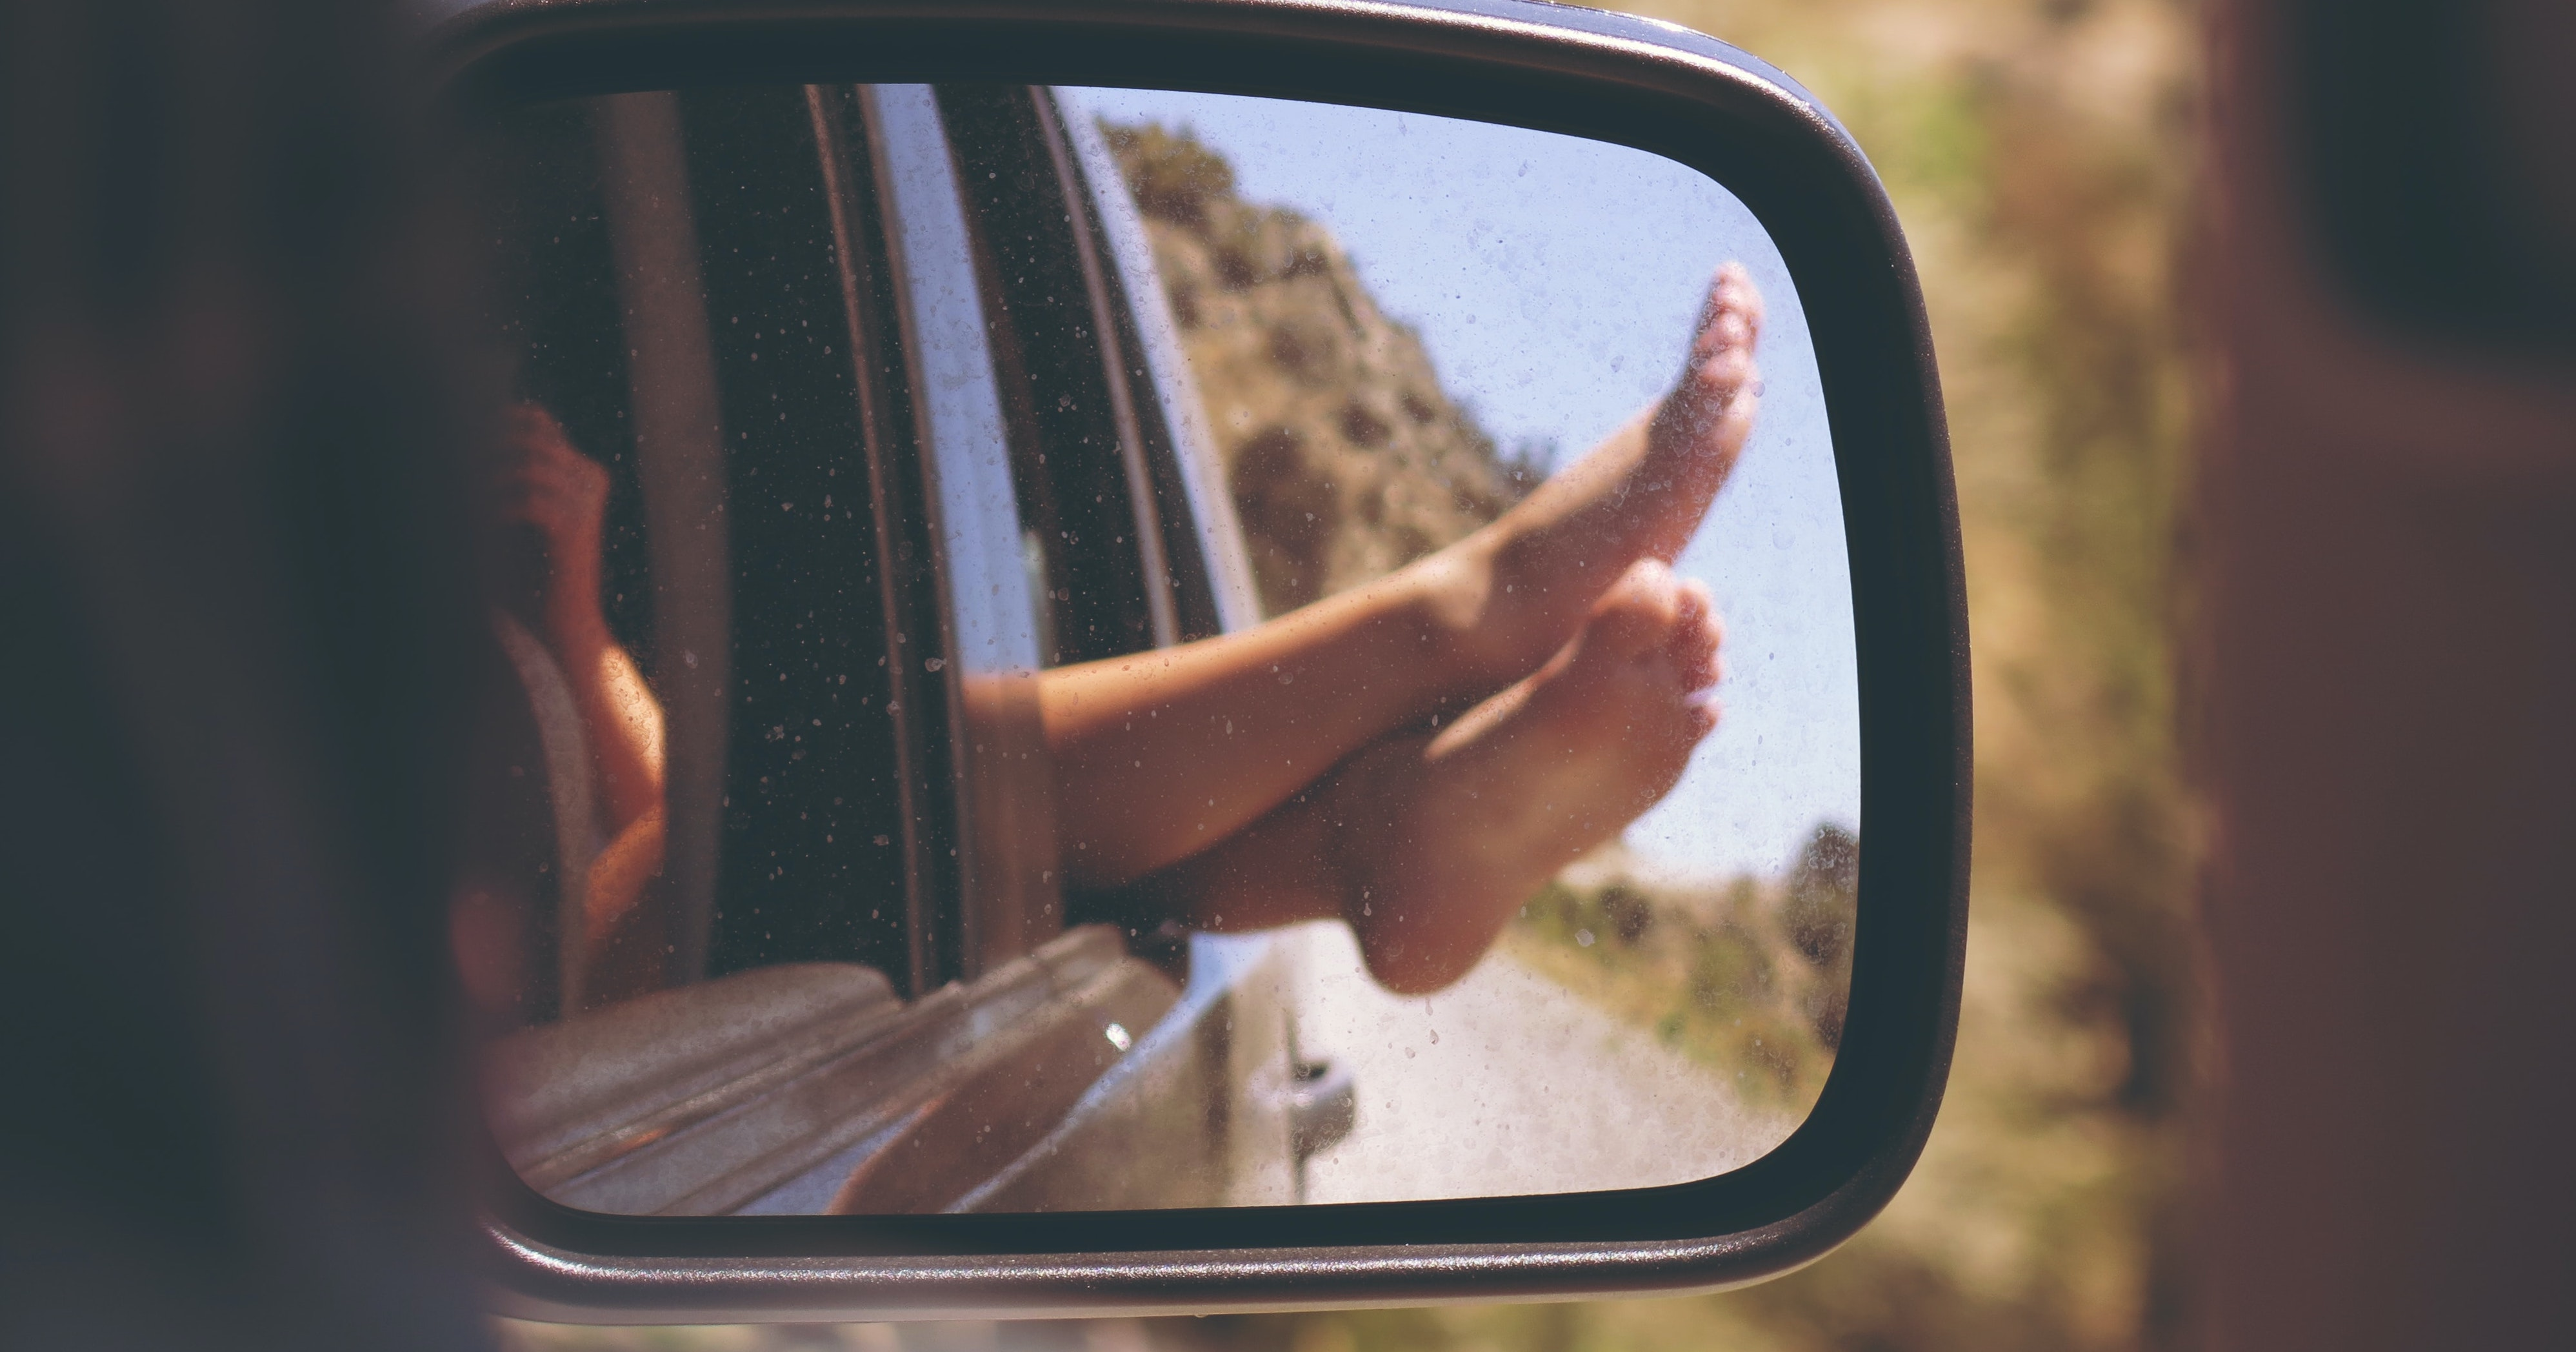 Feet out the window and car wing mirror